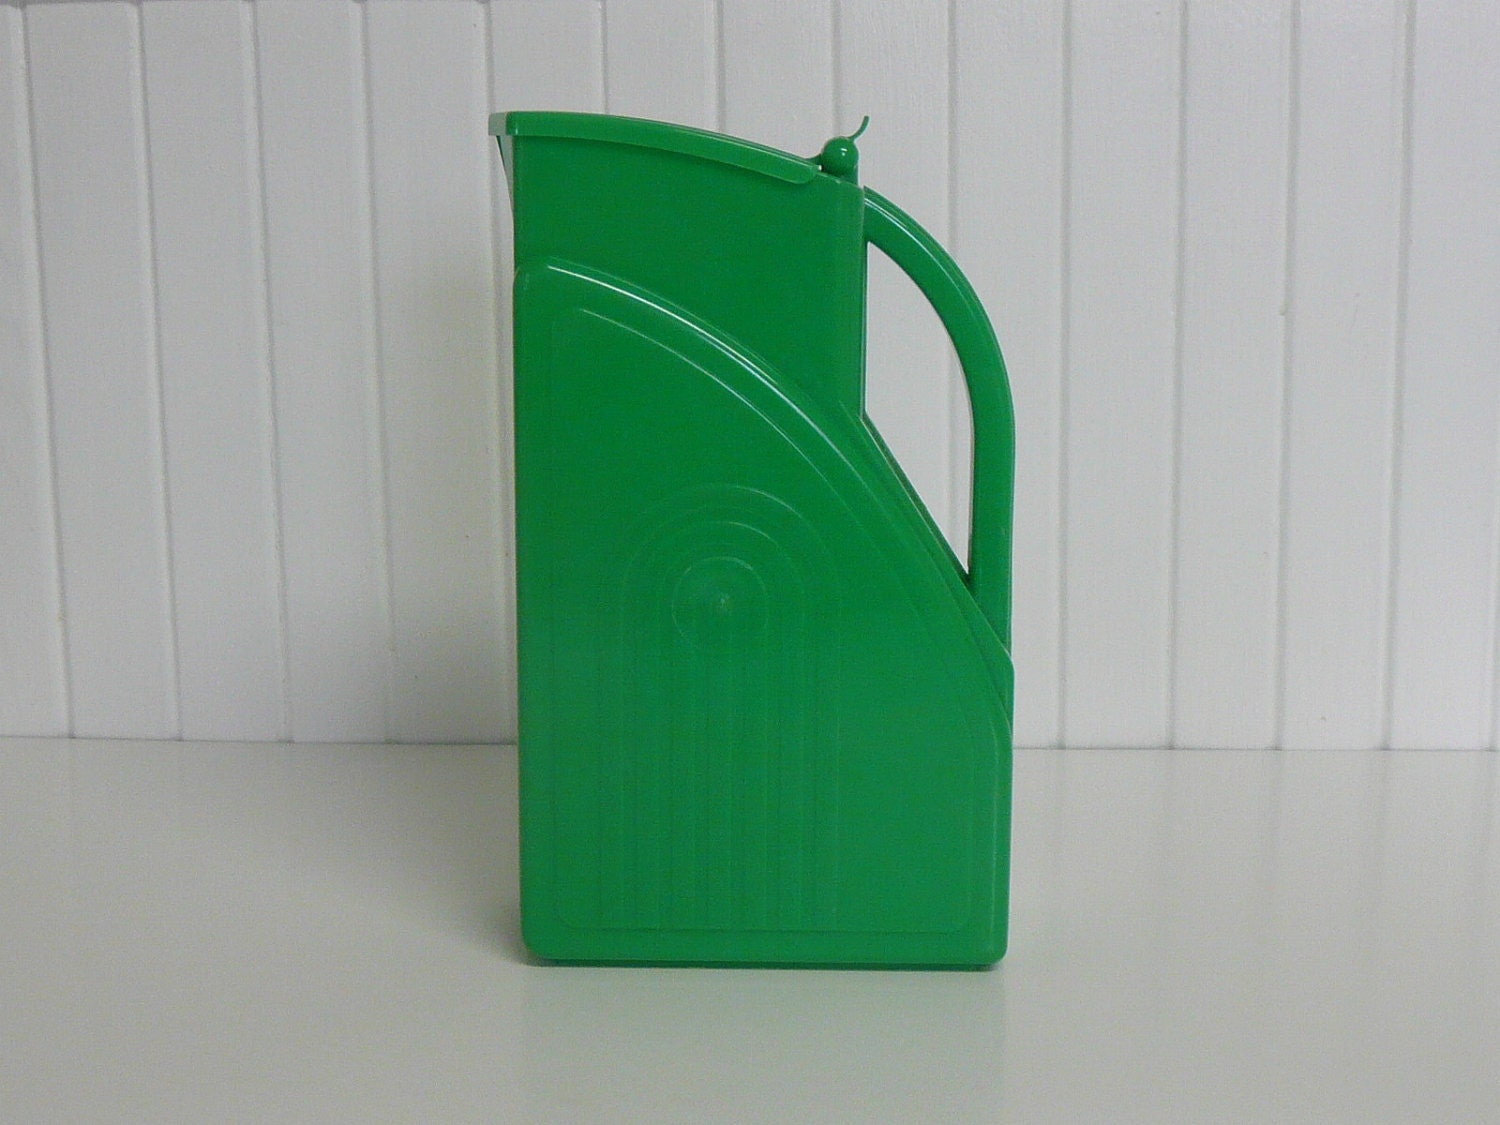 RARE 1950s Art Deco Plastic Pitcher, Tall, Green - Vintage Travel Trailer and Home Decor - NewLIfeVintageRVs